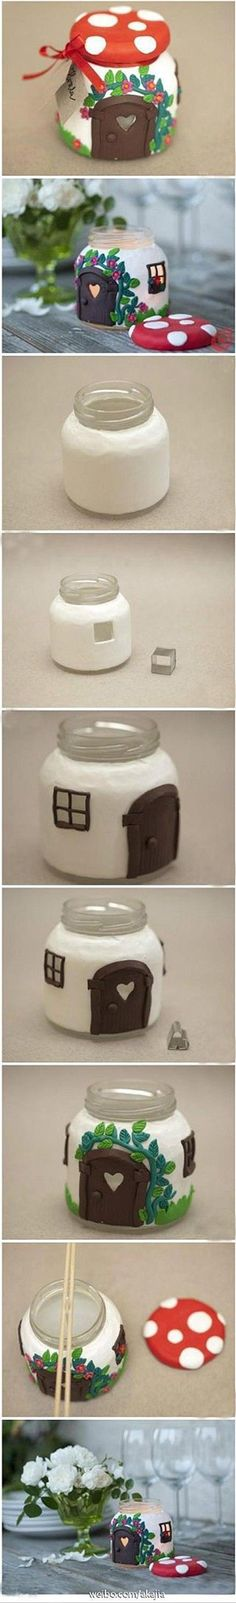 Dump A Day Fun Do It Yourself Craft Ideas - 62 Pics